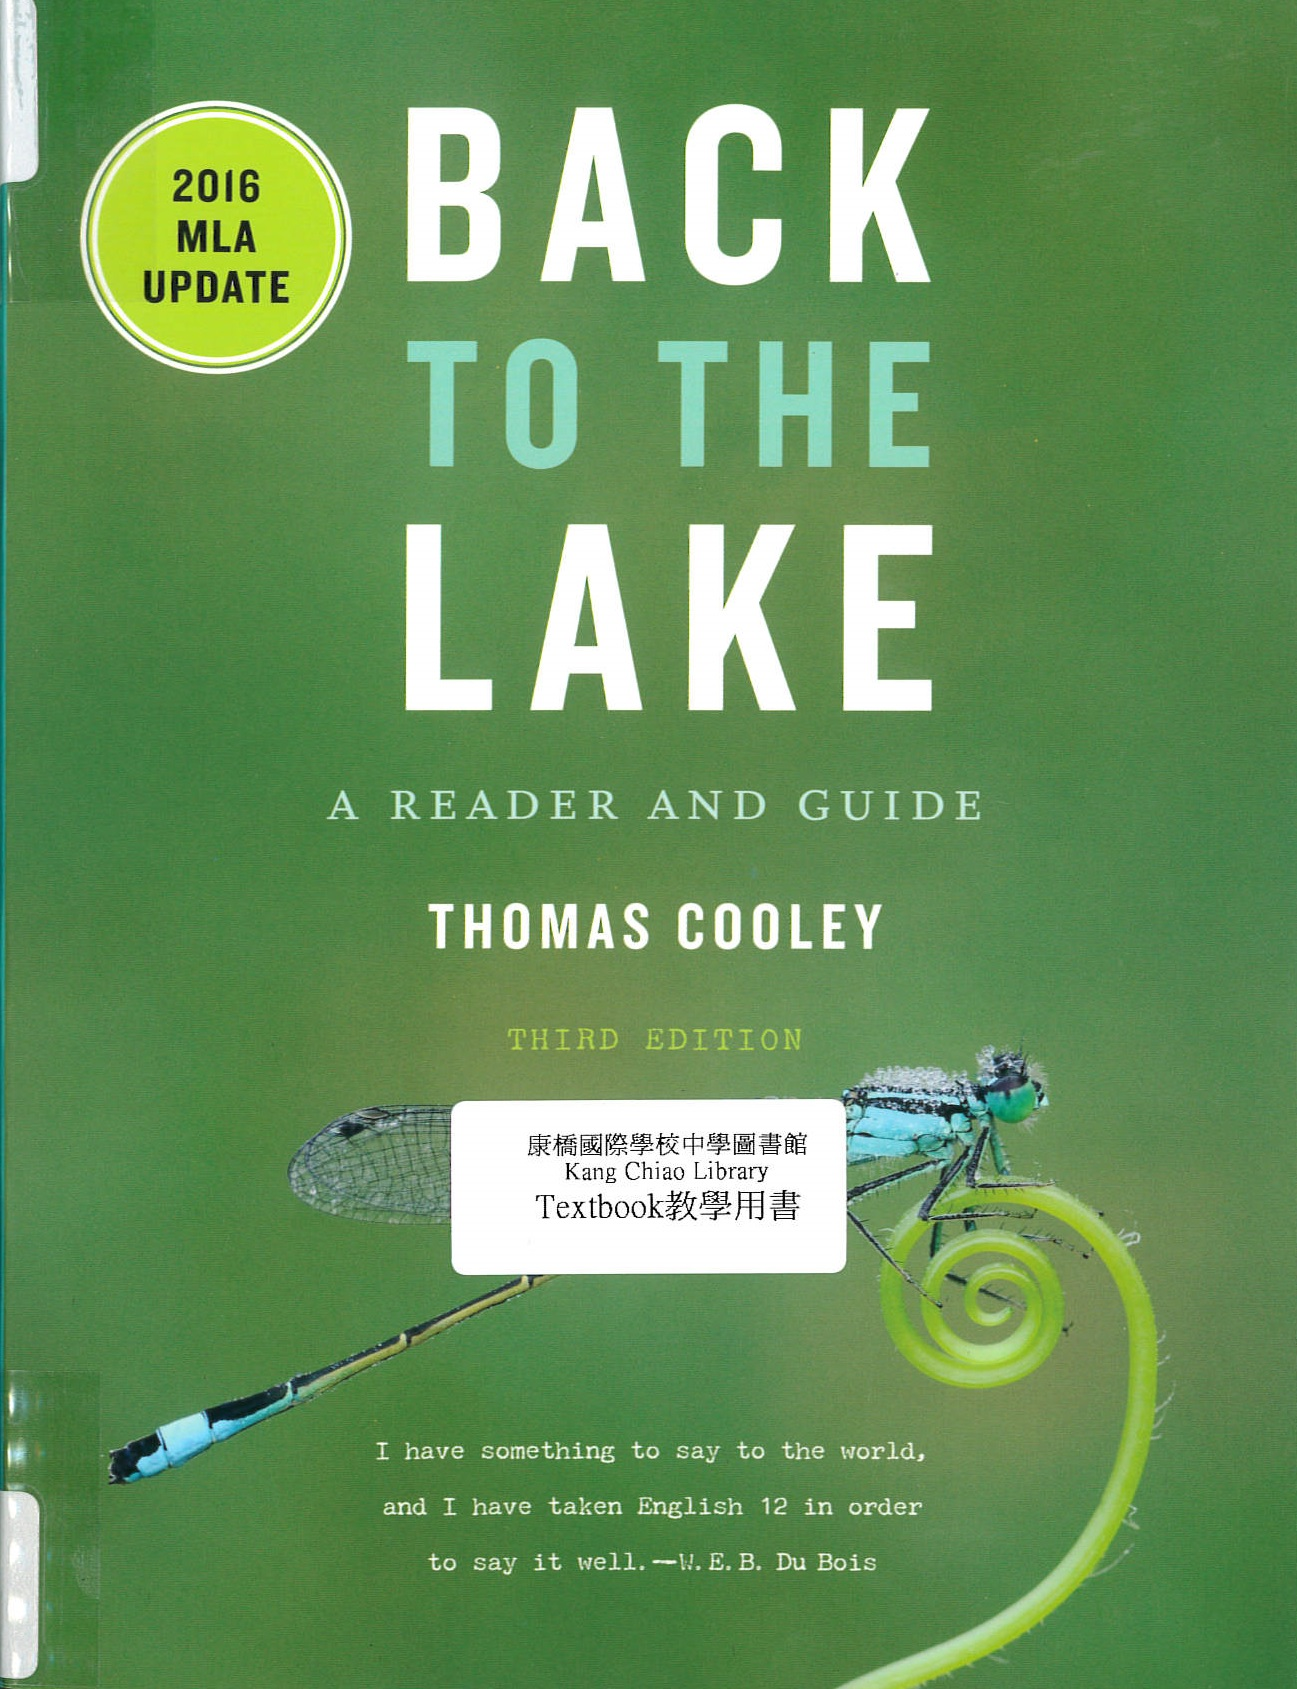 Back to the lake [For IB] : a reader and guide